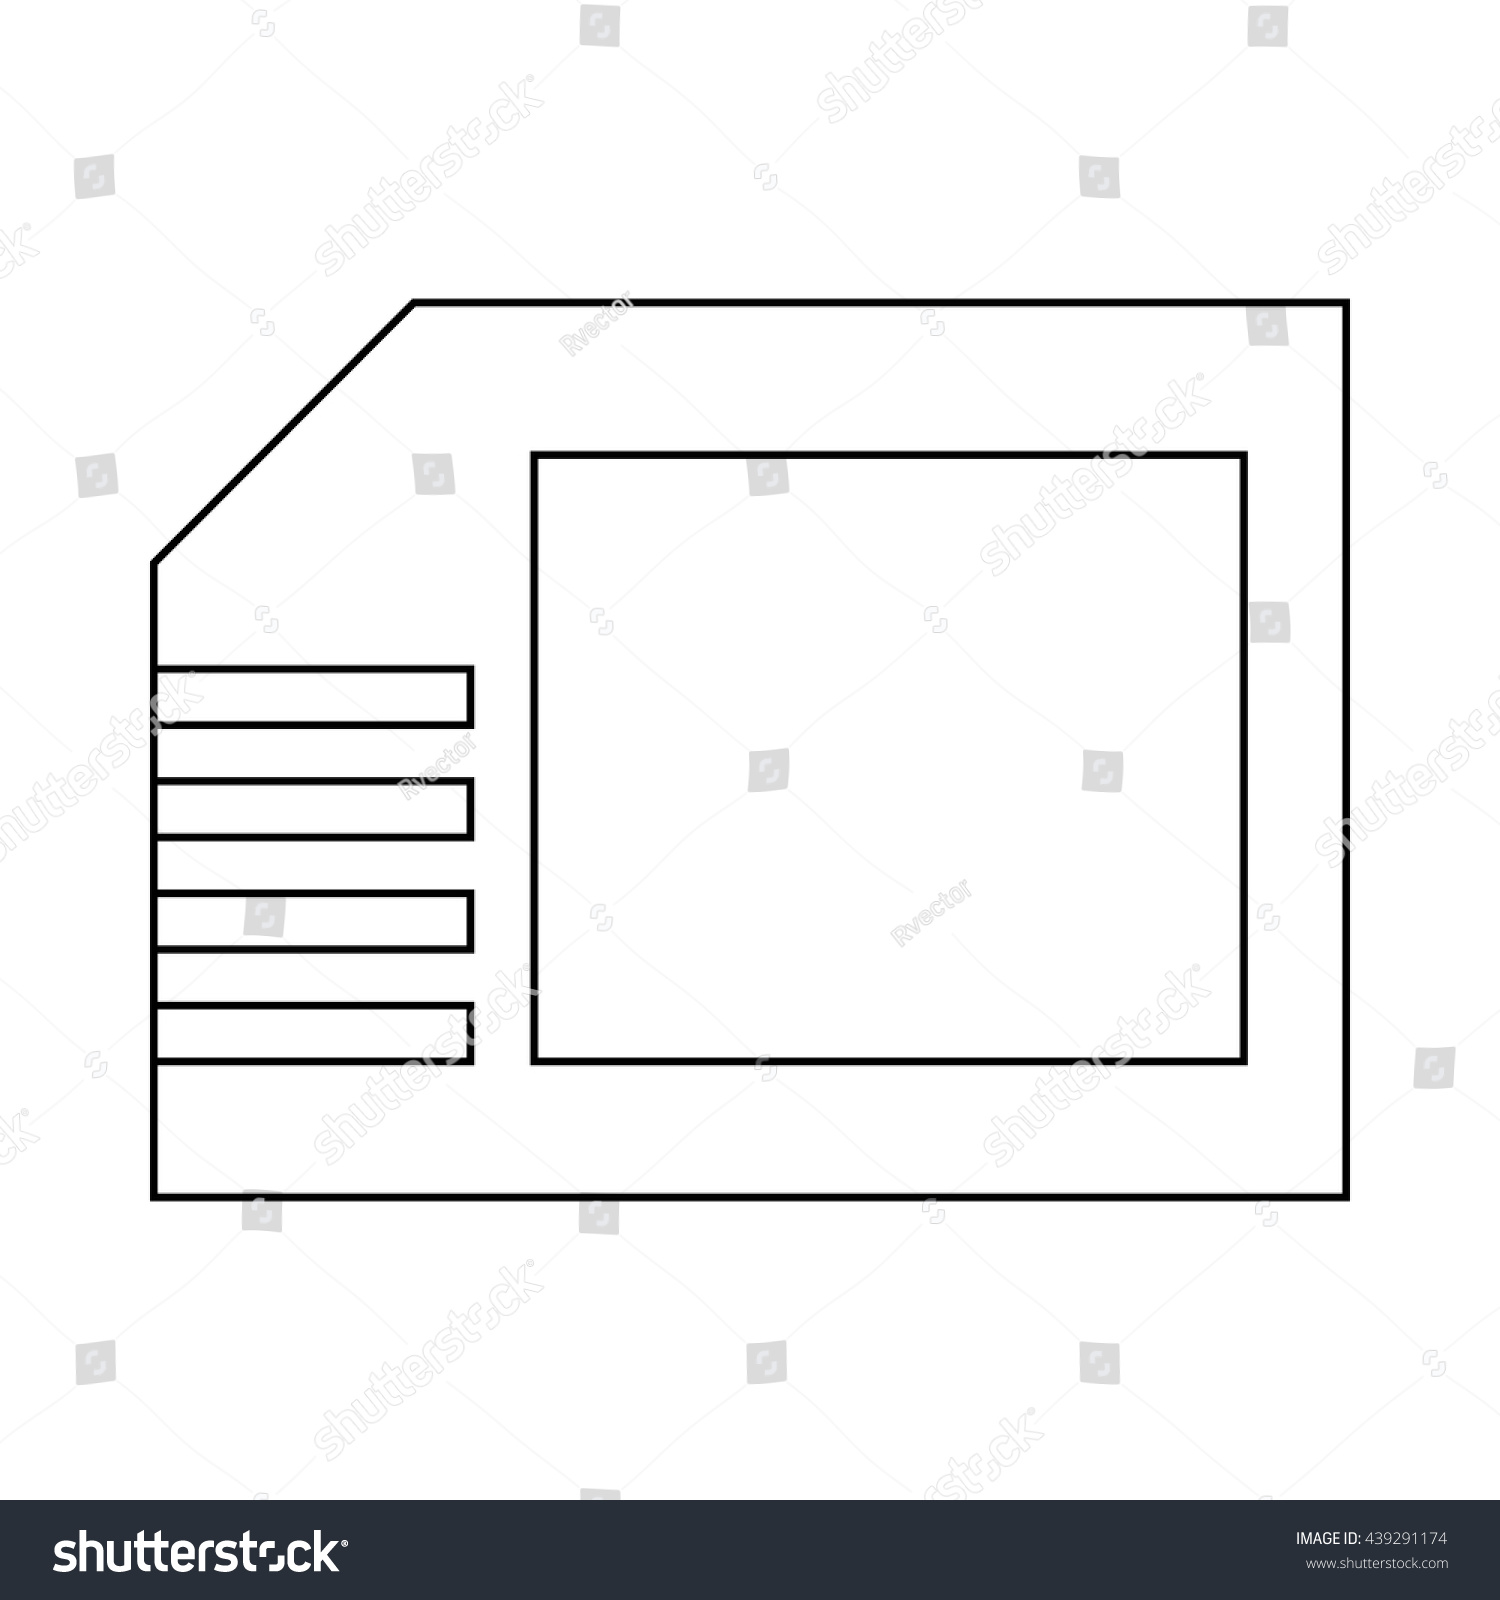 Micro sd card icon outline style stock vector 439291174 shutterstock micro sd card icon outline style pooptronica Choice Image